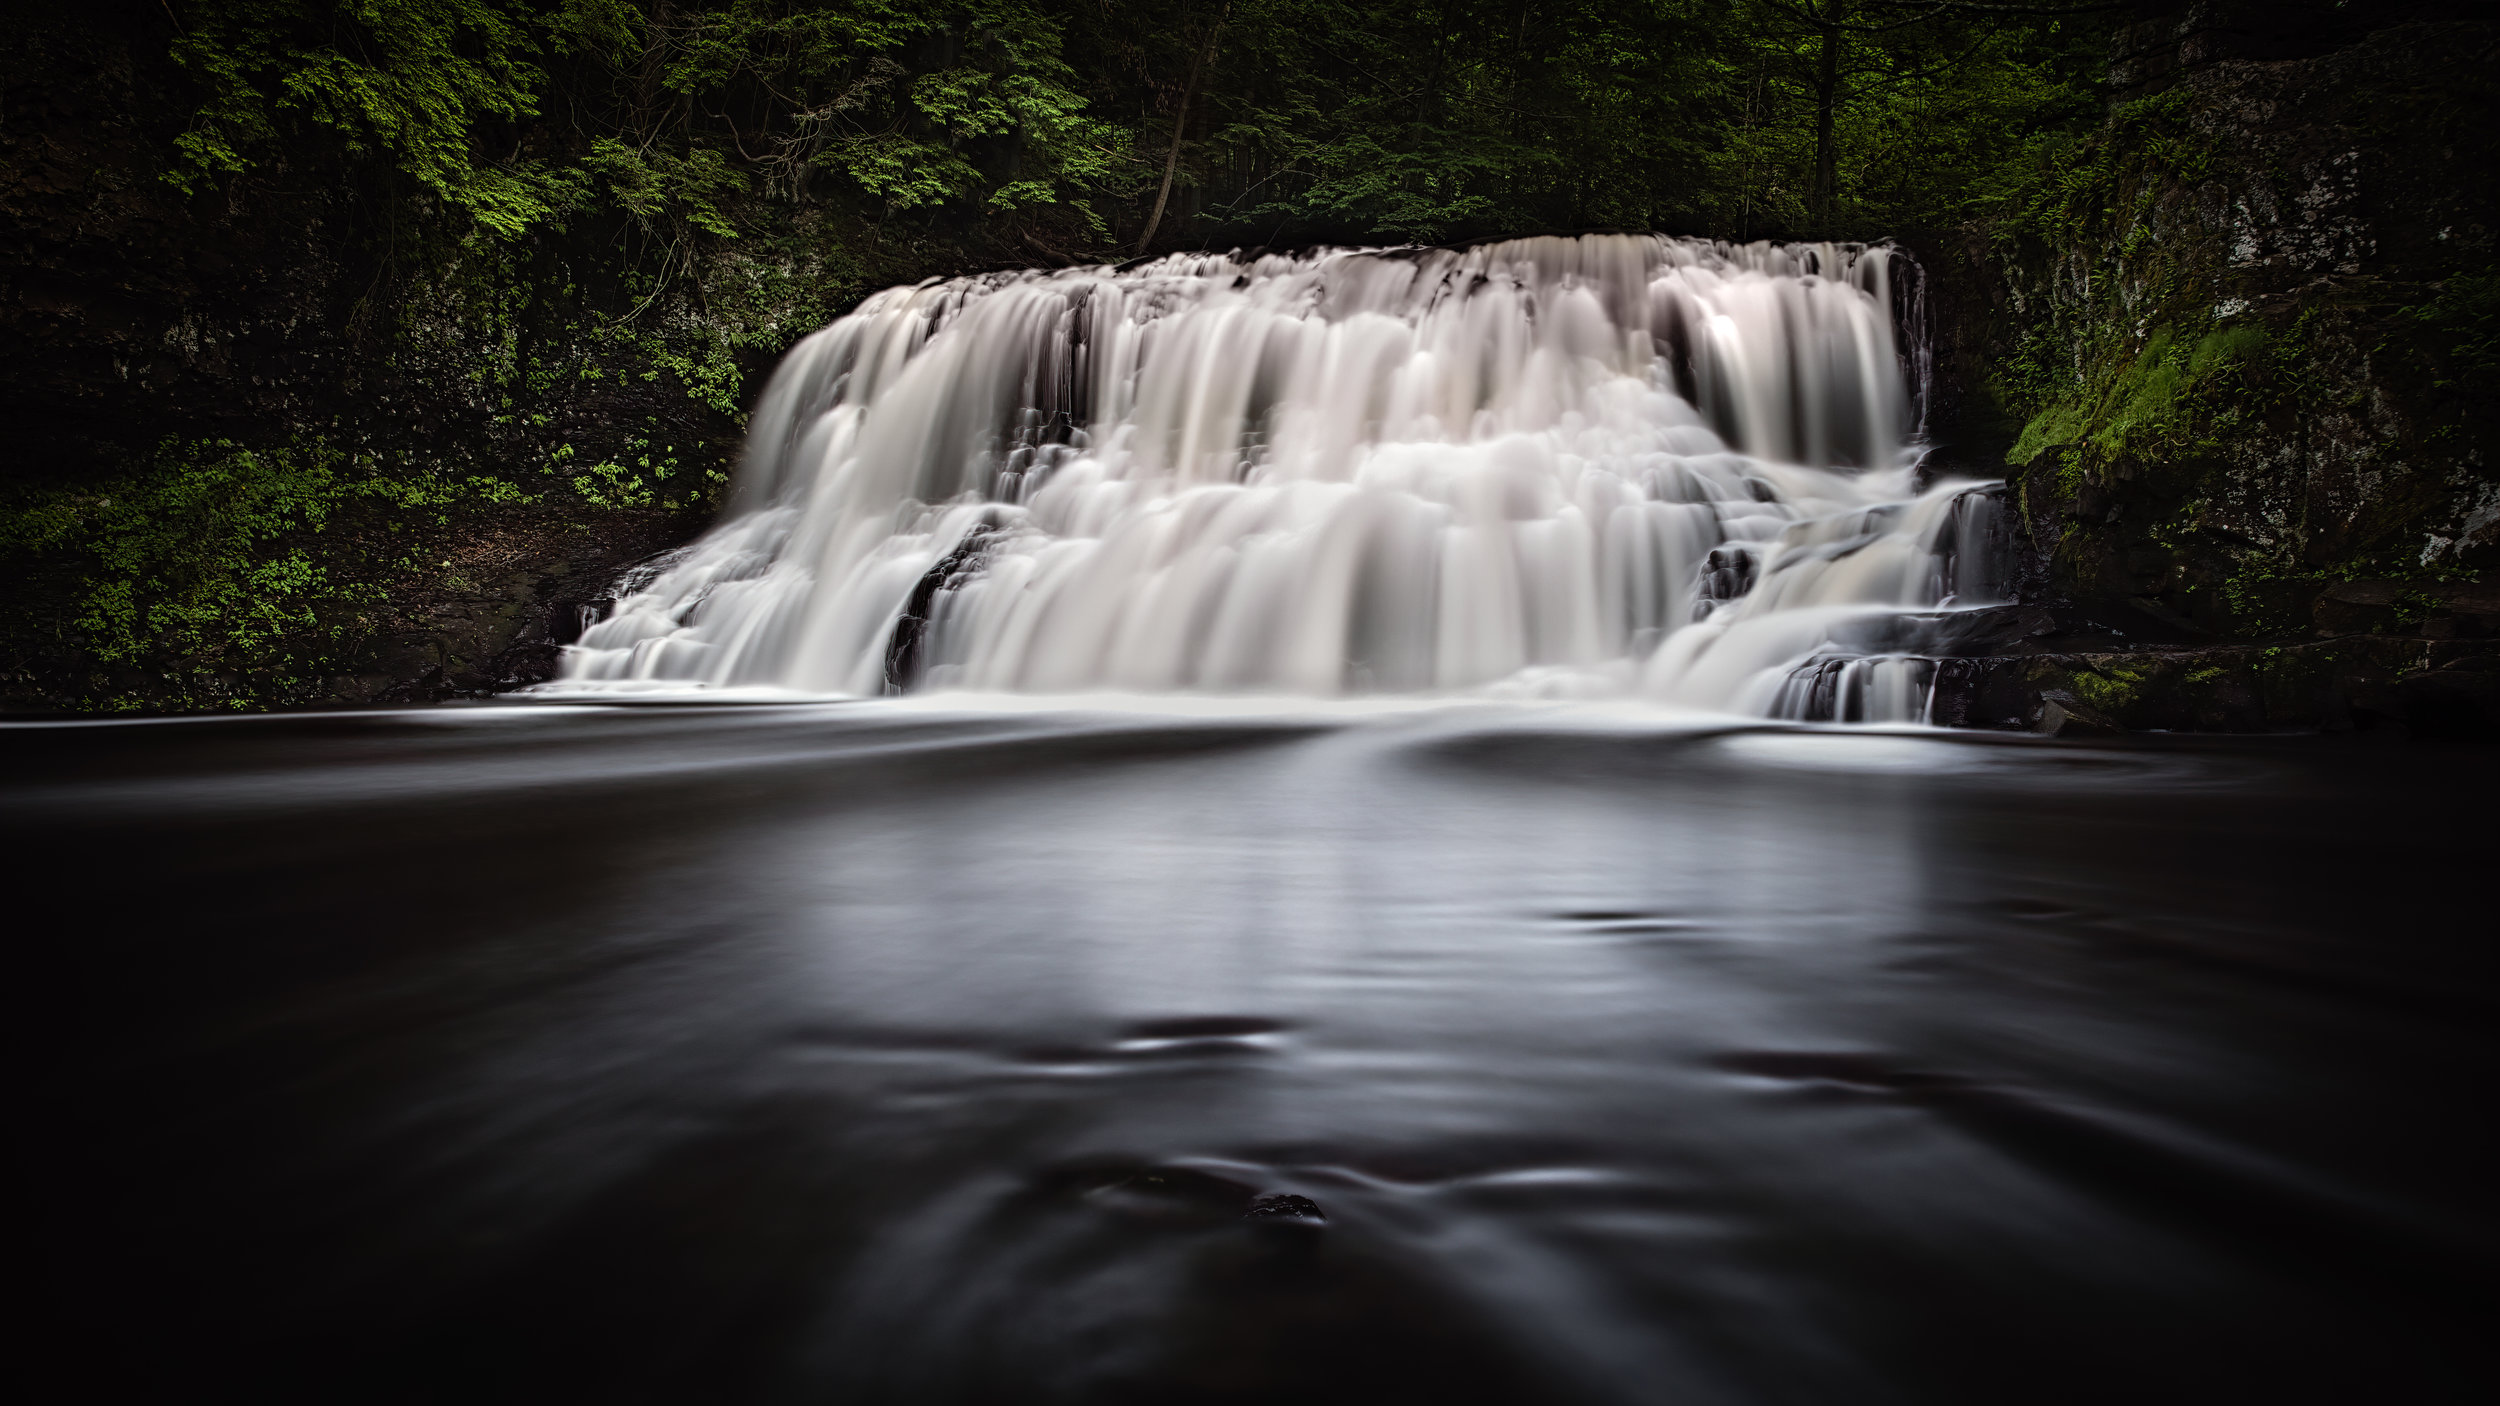 Head on, rocks in the middle with water going on either side of me. Trees blended in from a normal shutter speed for stillness.